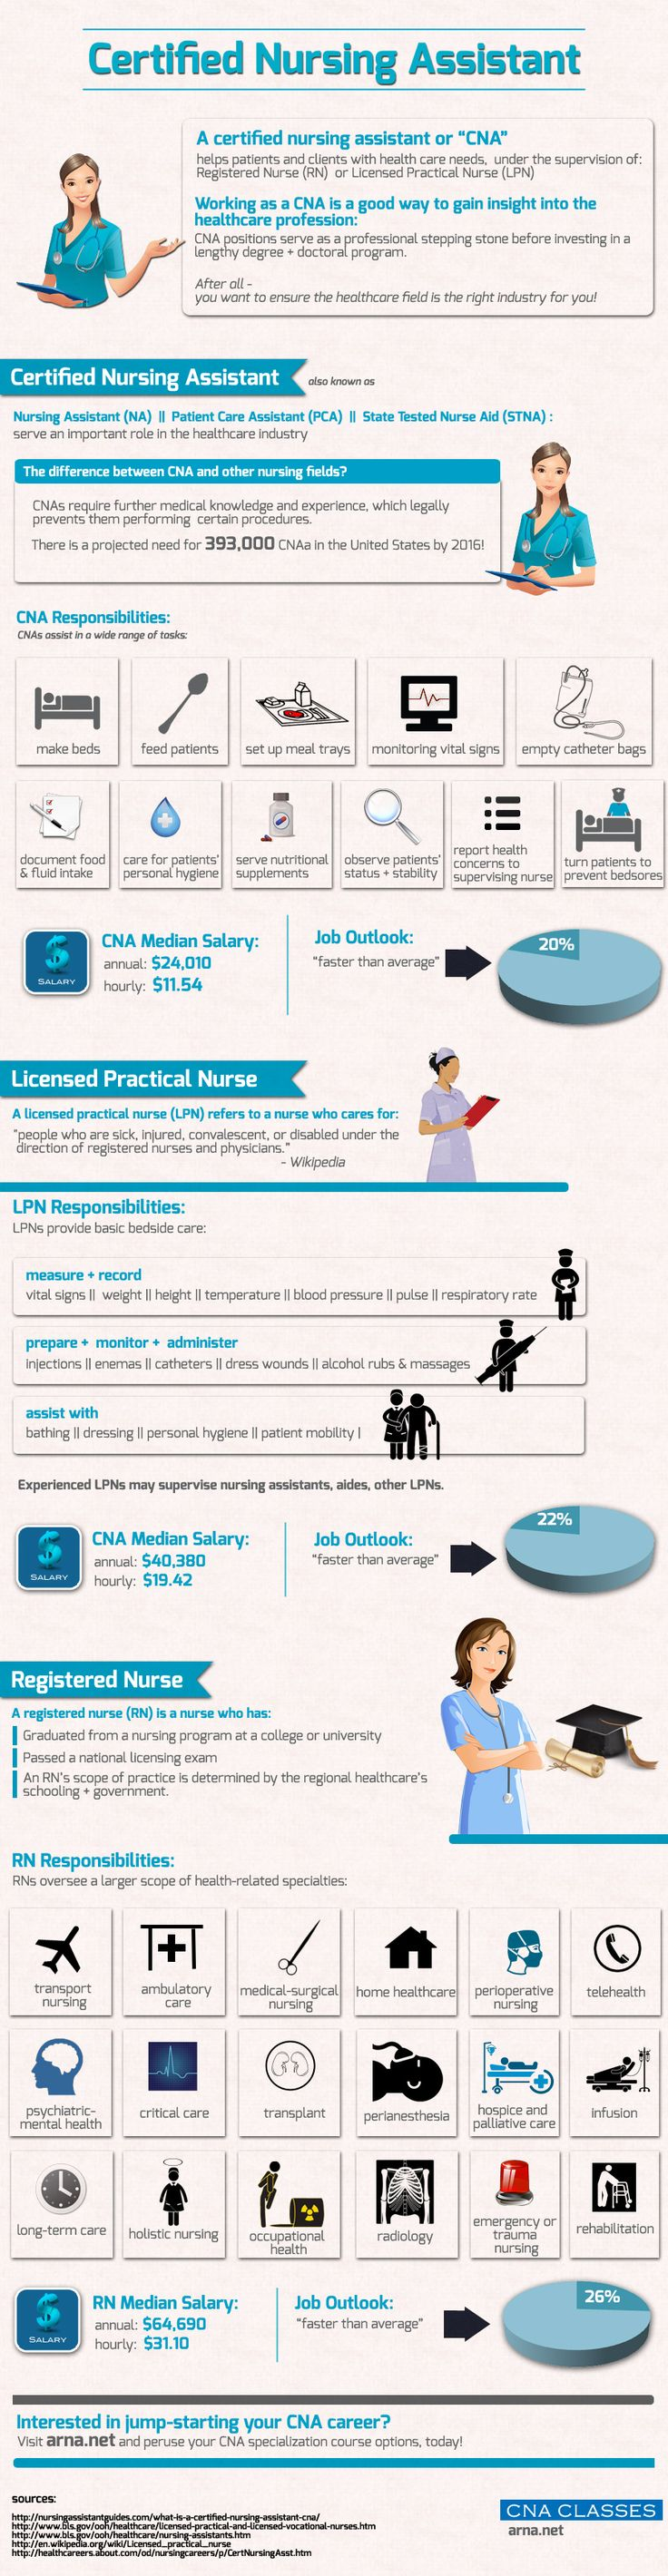 11 main responsibilities of a certified nursing assistant healthrf - Duties Of Nurse Assistant